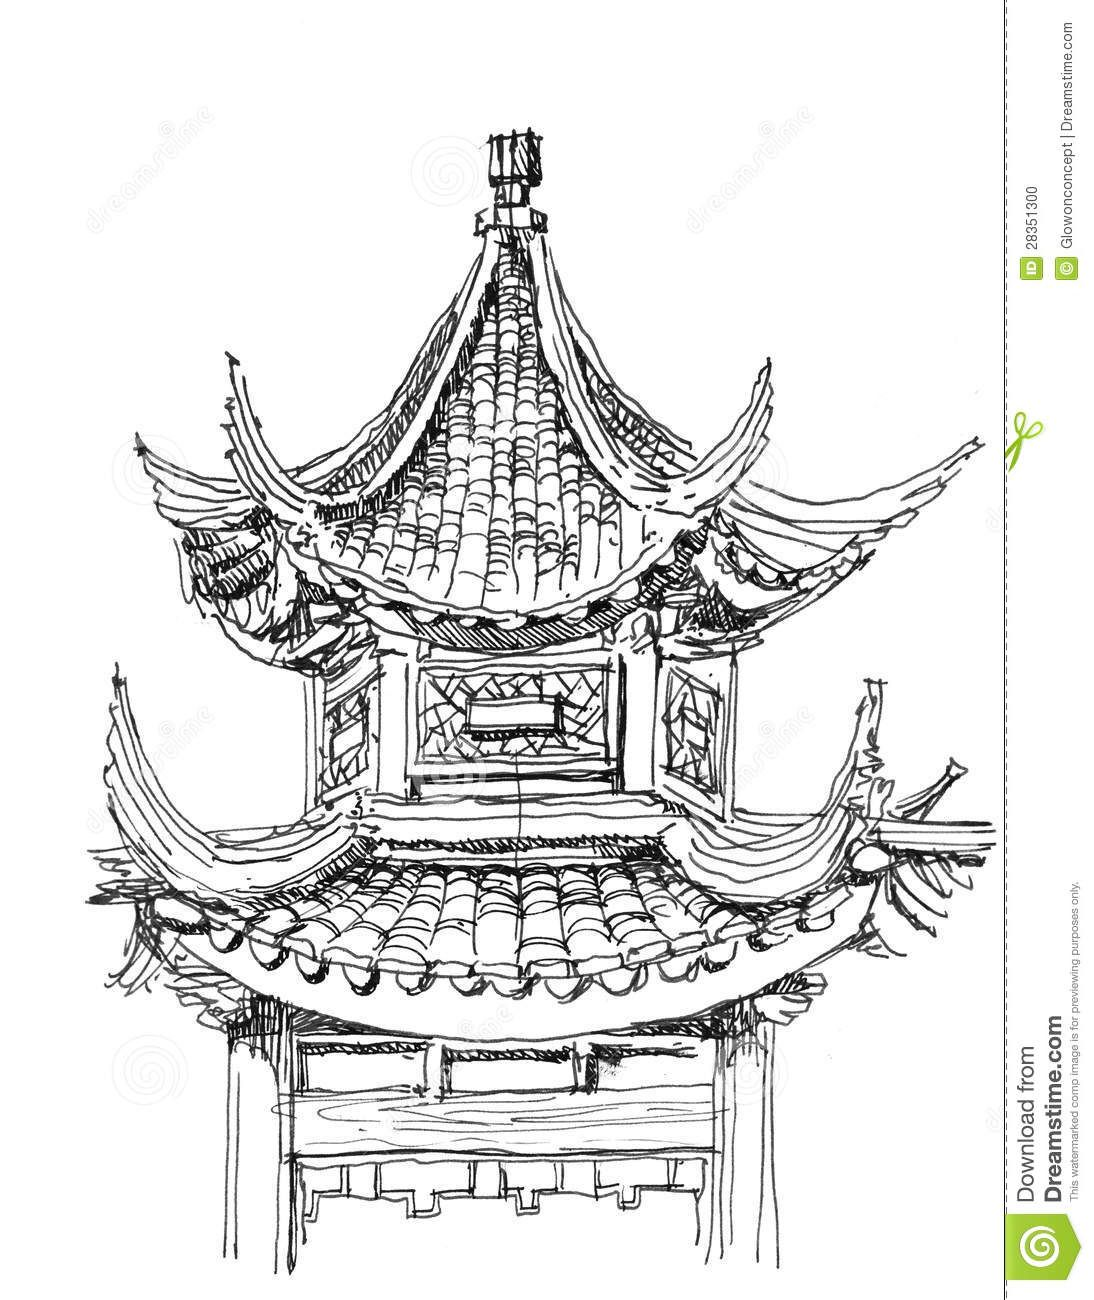 Afbeelding Van Http Thumbs Dreamstime Com Z Chinese Temple Drawing 28351300 Jpg Temple Drawing Chinese Drawings Asian Architecture